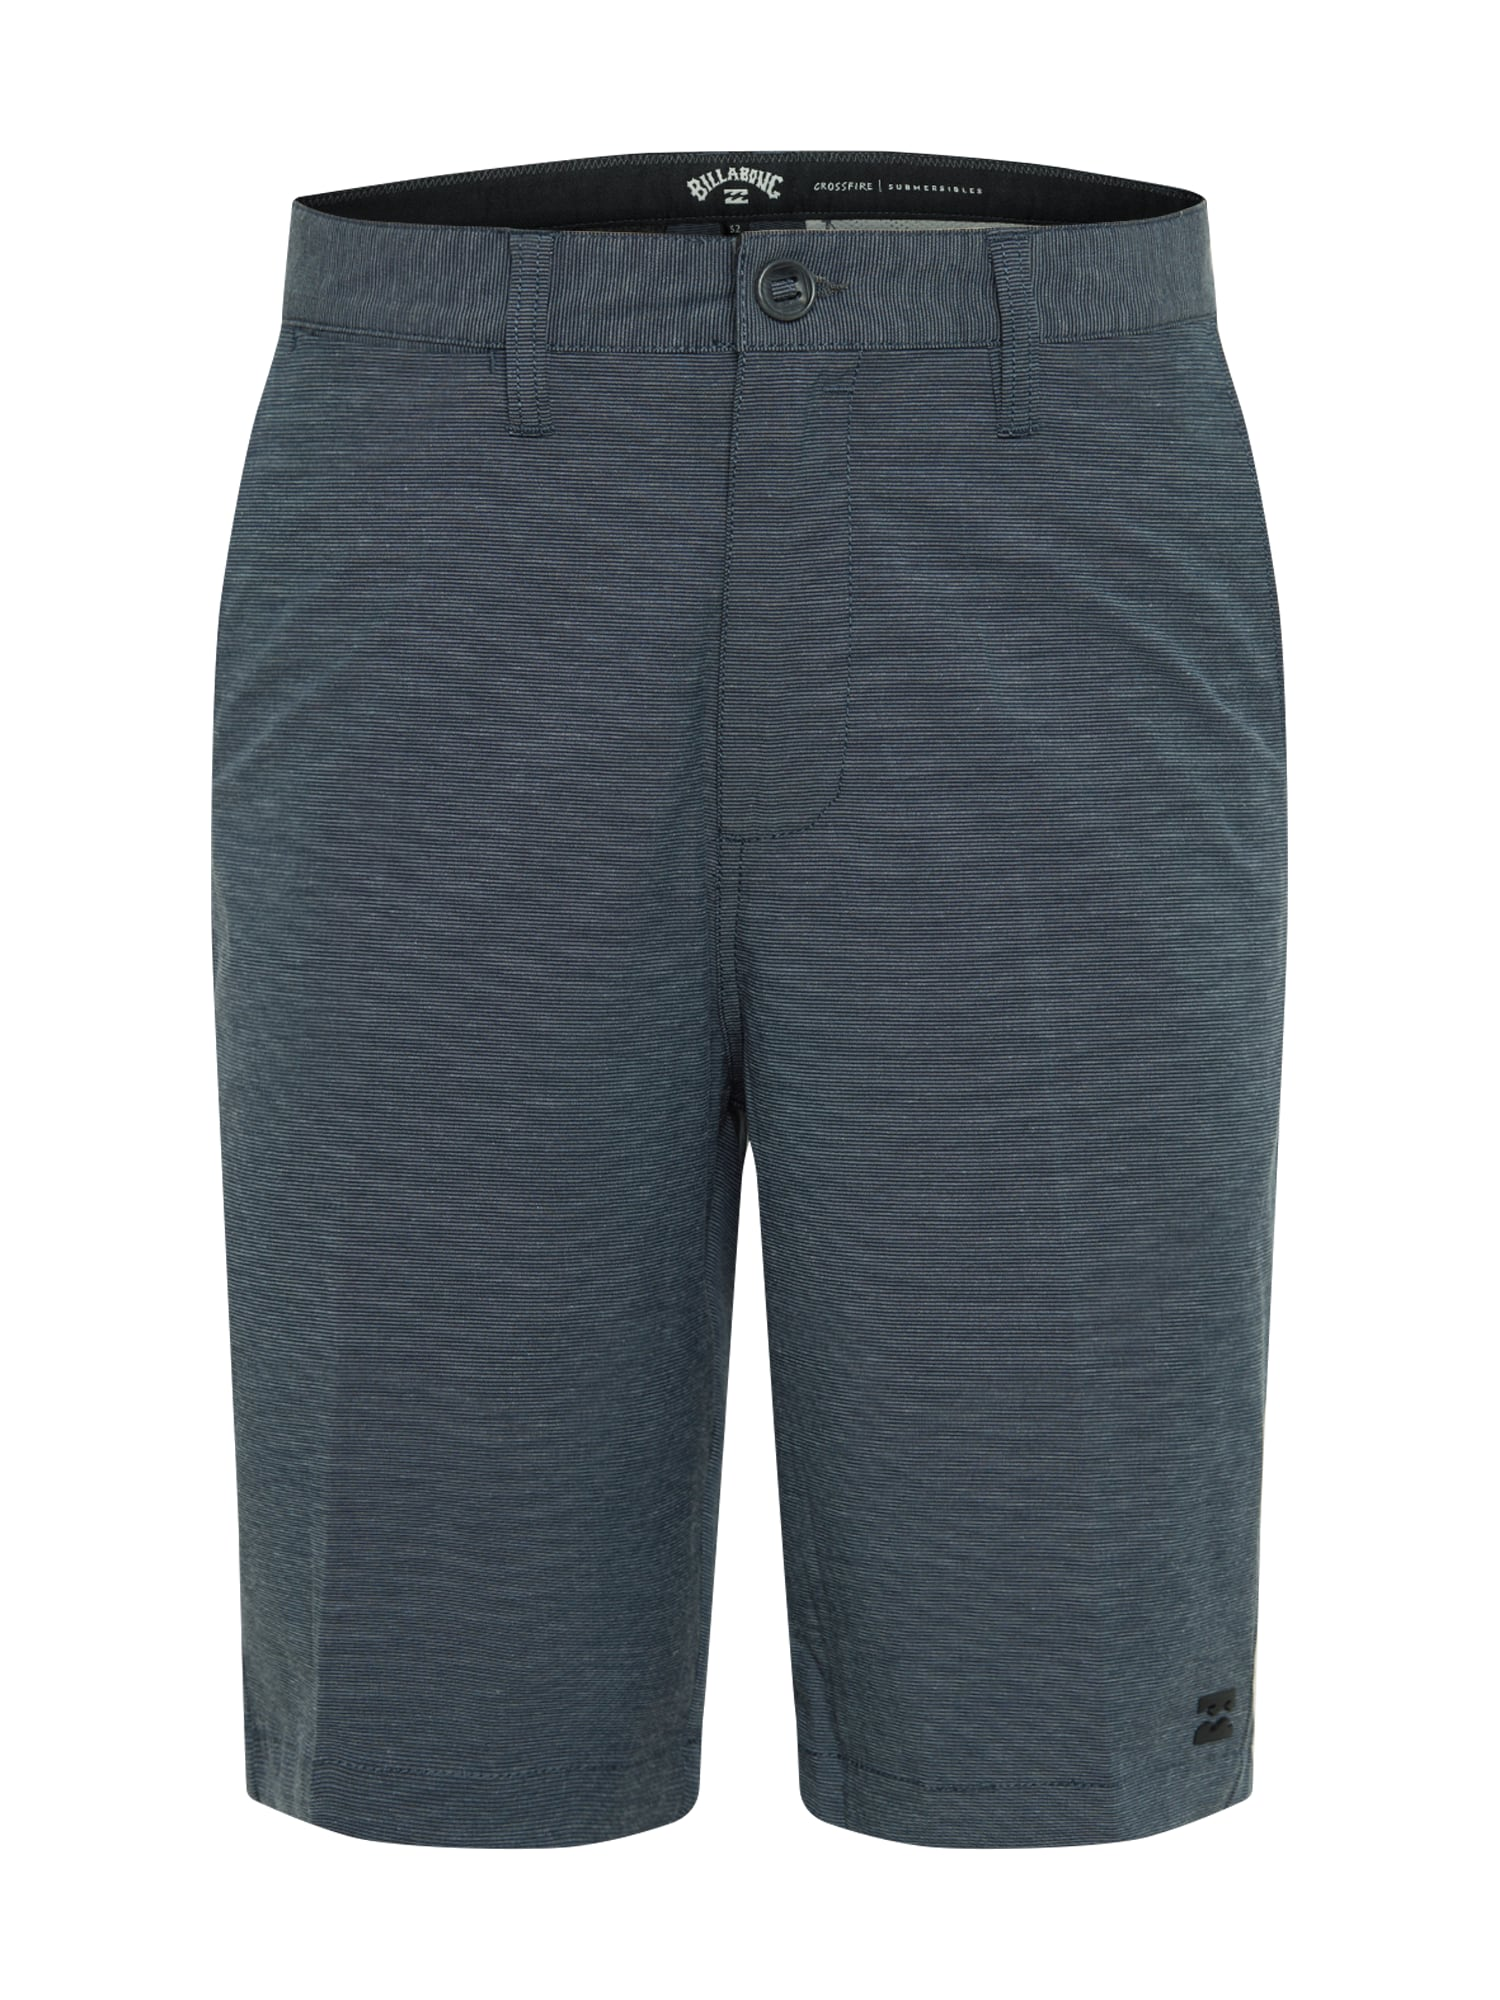 BILLABONG Chino stiliaus kelnės 'CROSSFIRE' pilka